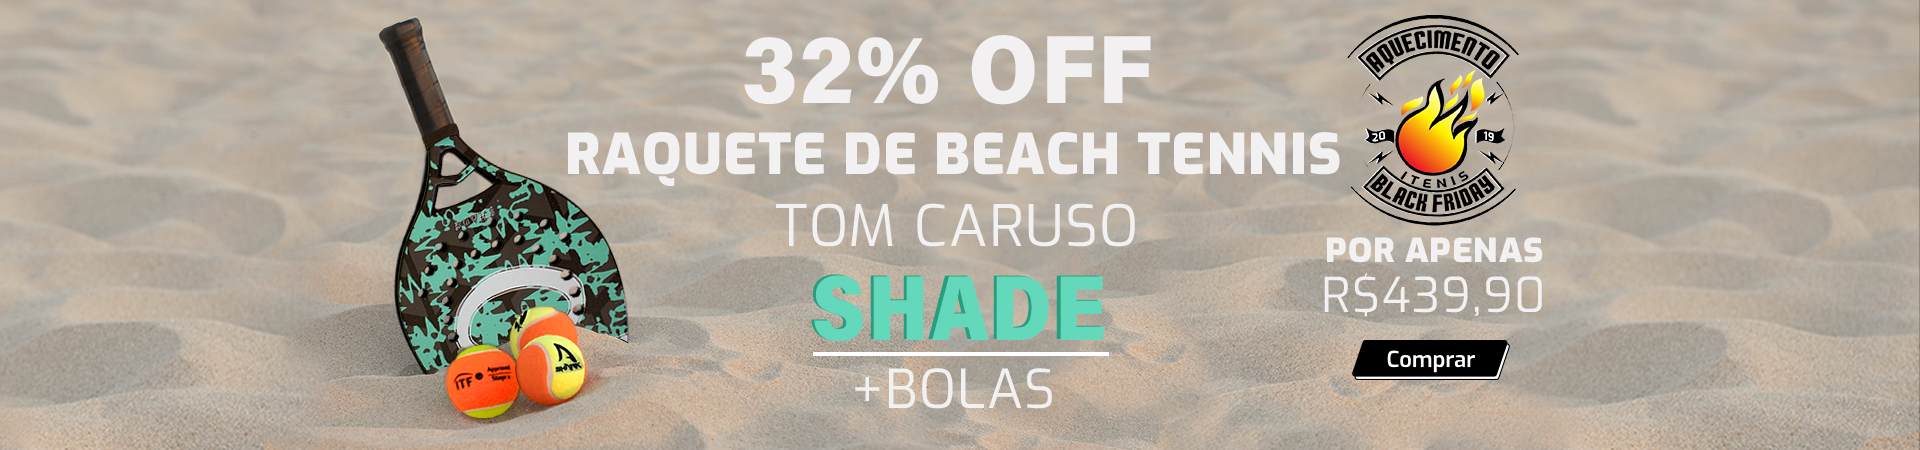 Raquete de Beach Tennis Tom Caruso Shade